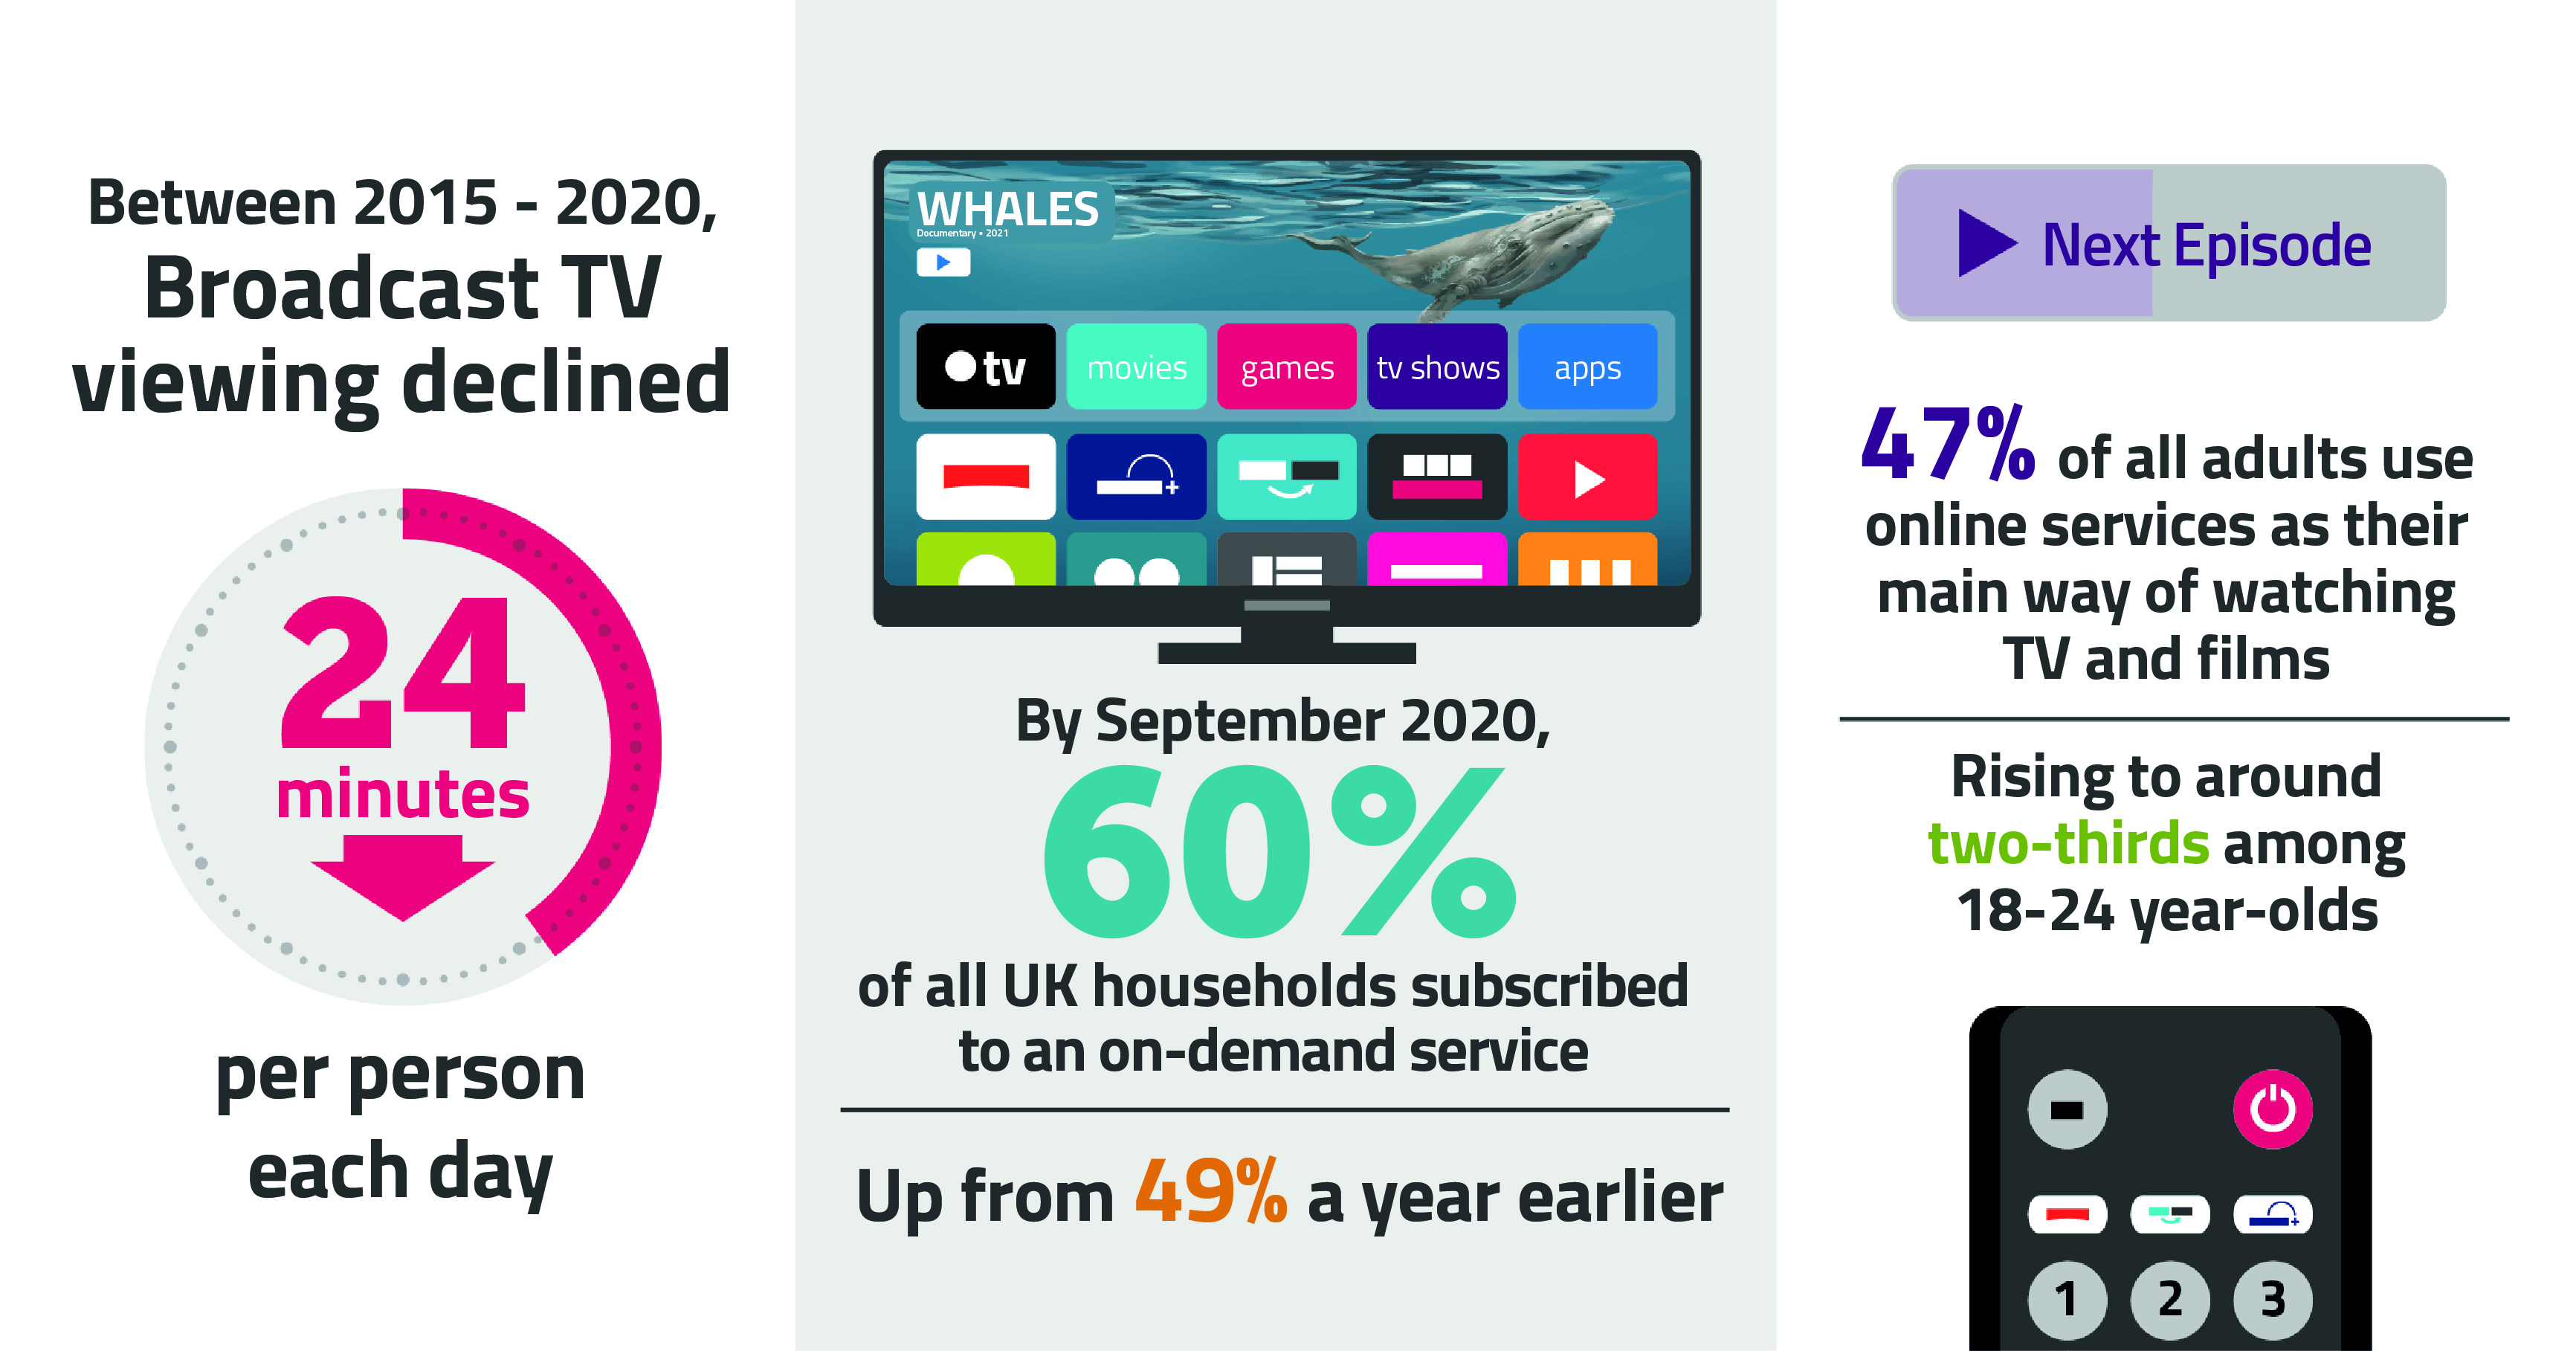 Between 2015 and 2020, broadcast viewing dropped by 24 minutes per person each day. 60% of all UK households subscribed to an on-demand service by September 2020. 47% of adults use online services as their main way of watching TV and films, rising to two-thirds among 18-24 year-olds.